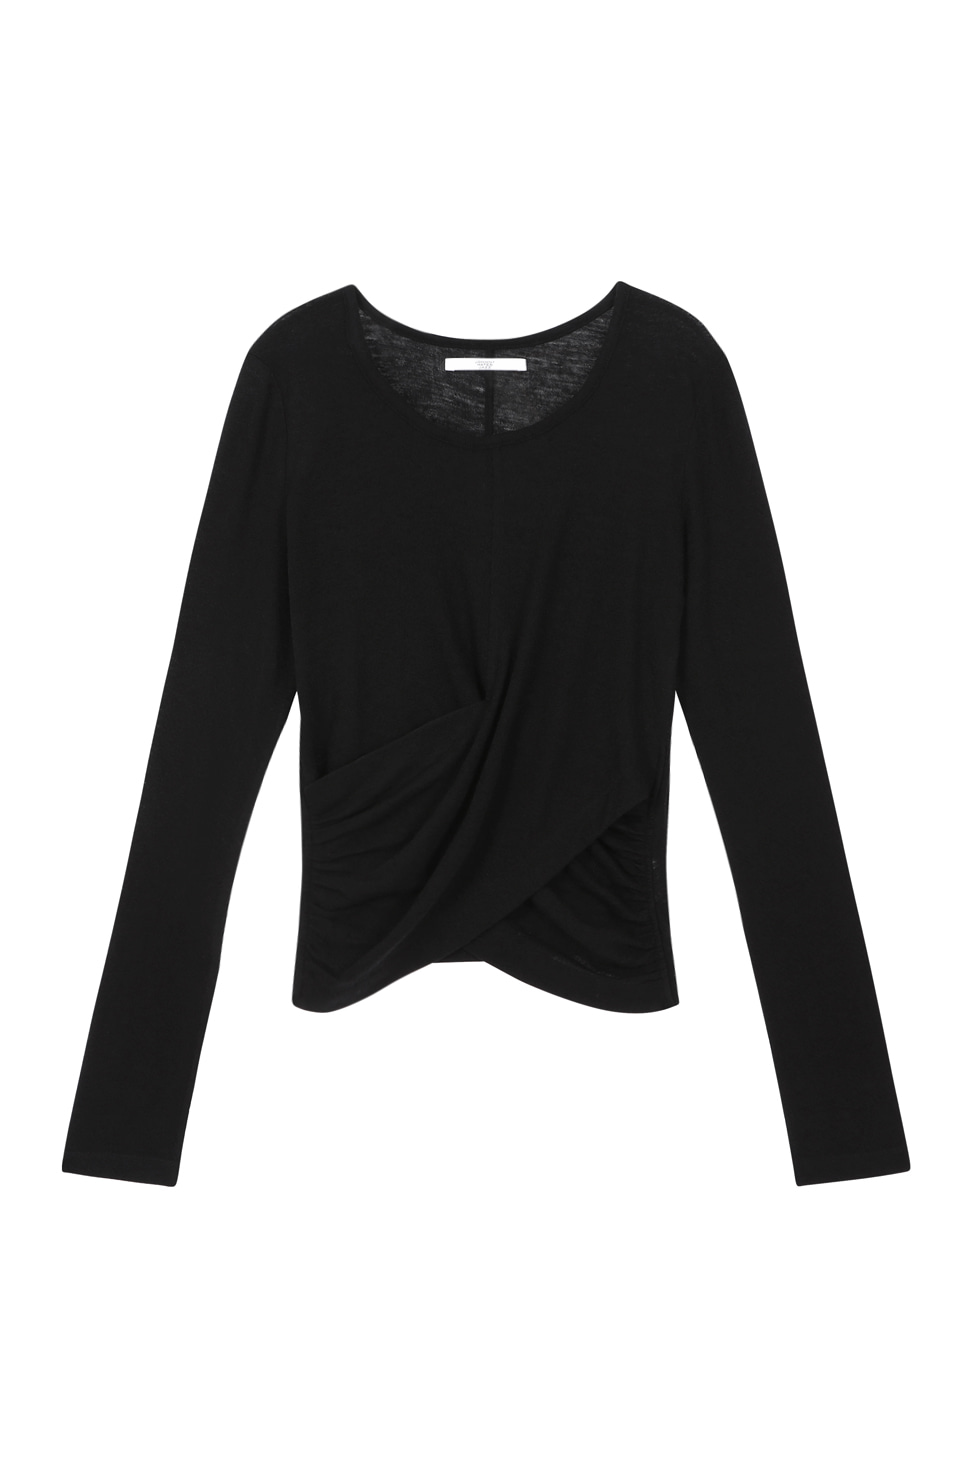 WOOL JERSEY LONG SLEEVES - BLACK